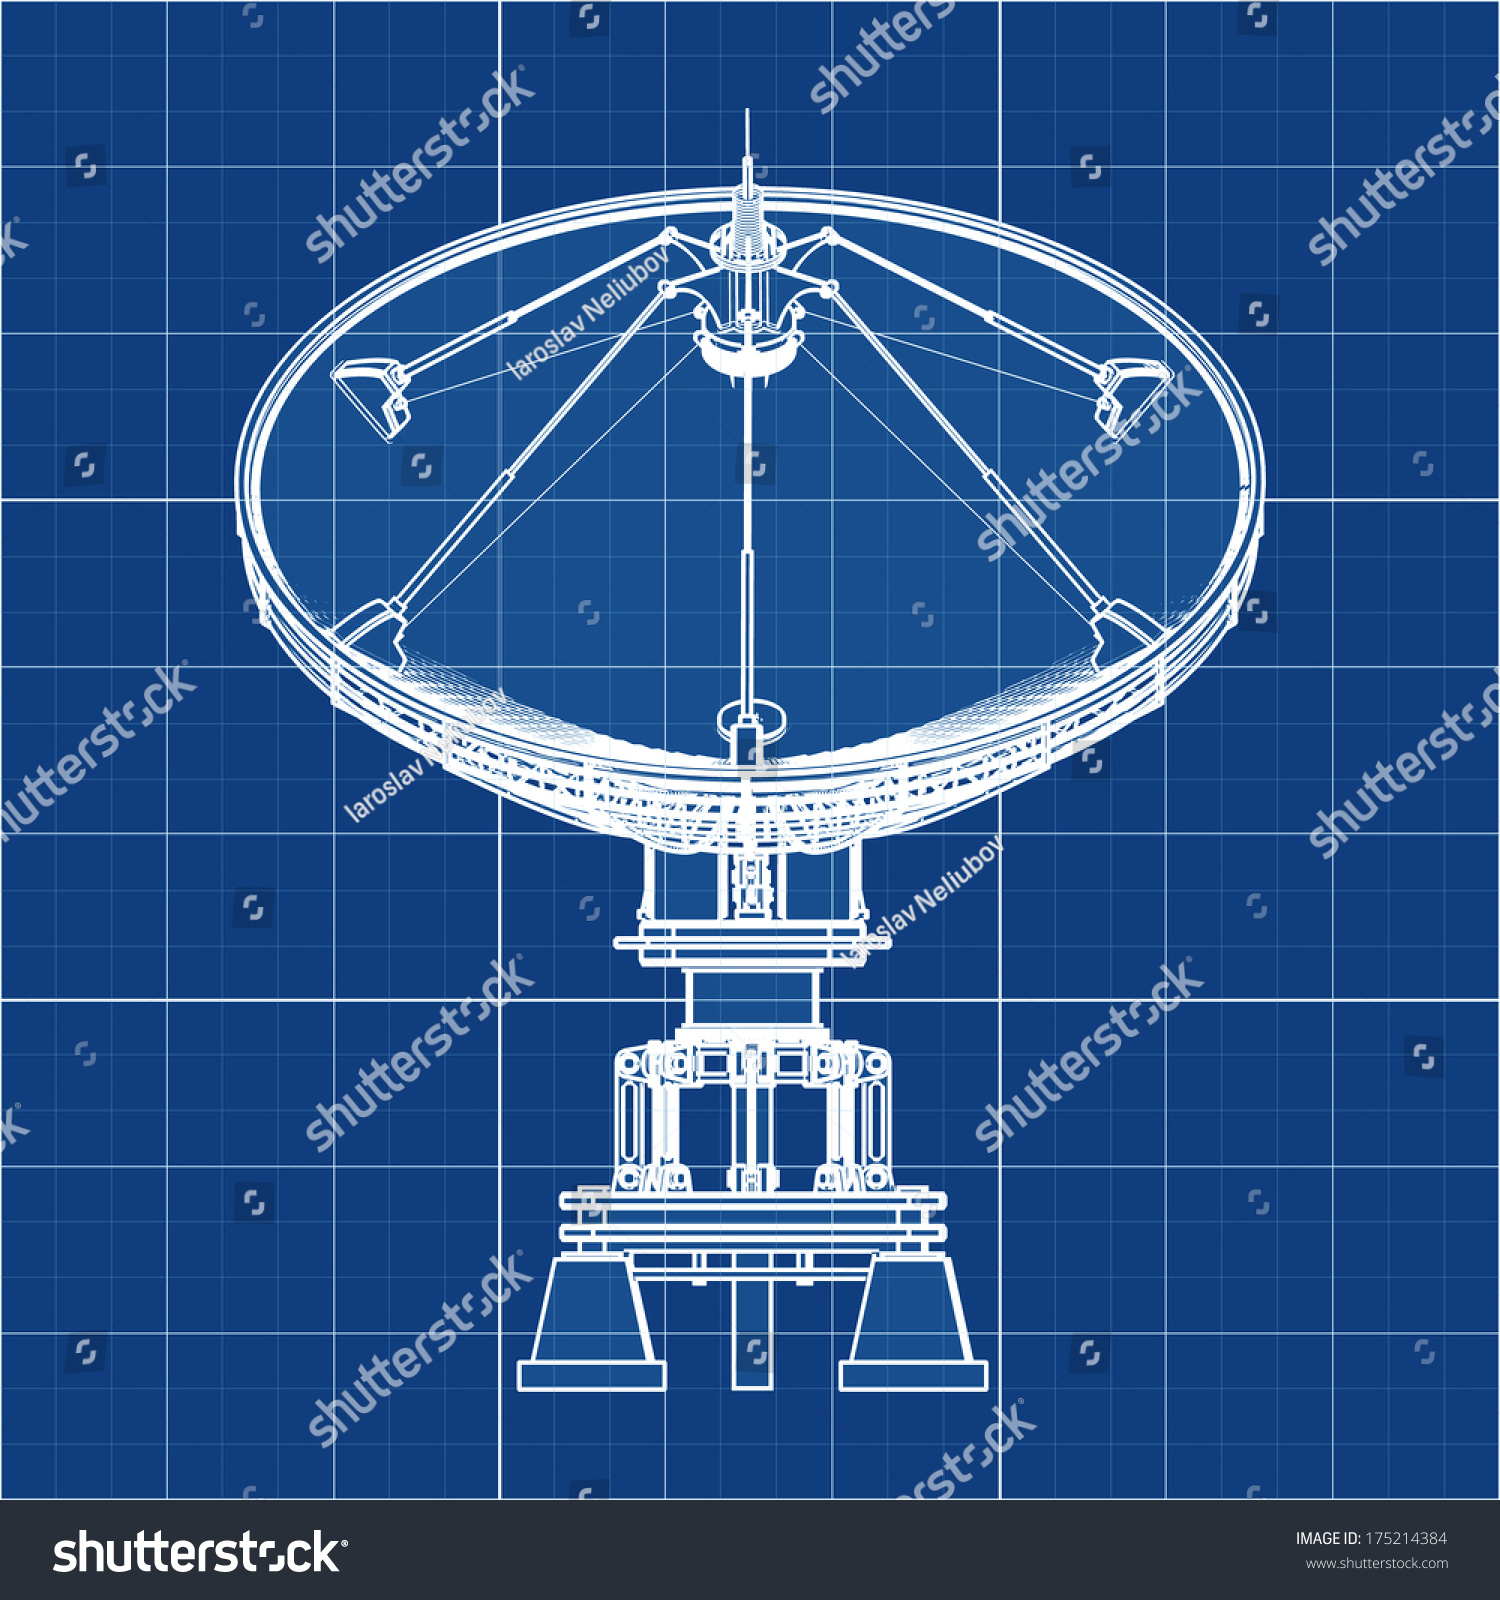 Satellite Dishes Antenna Doppler Radar Cad Stock Illustration ...